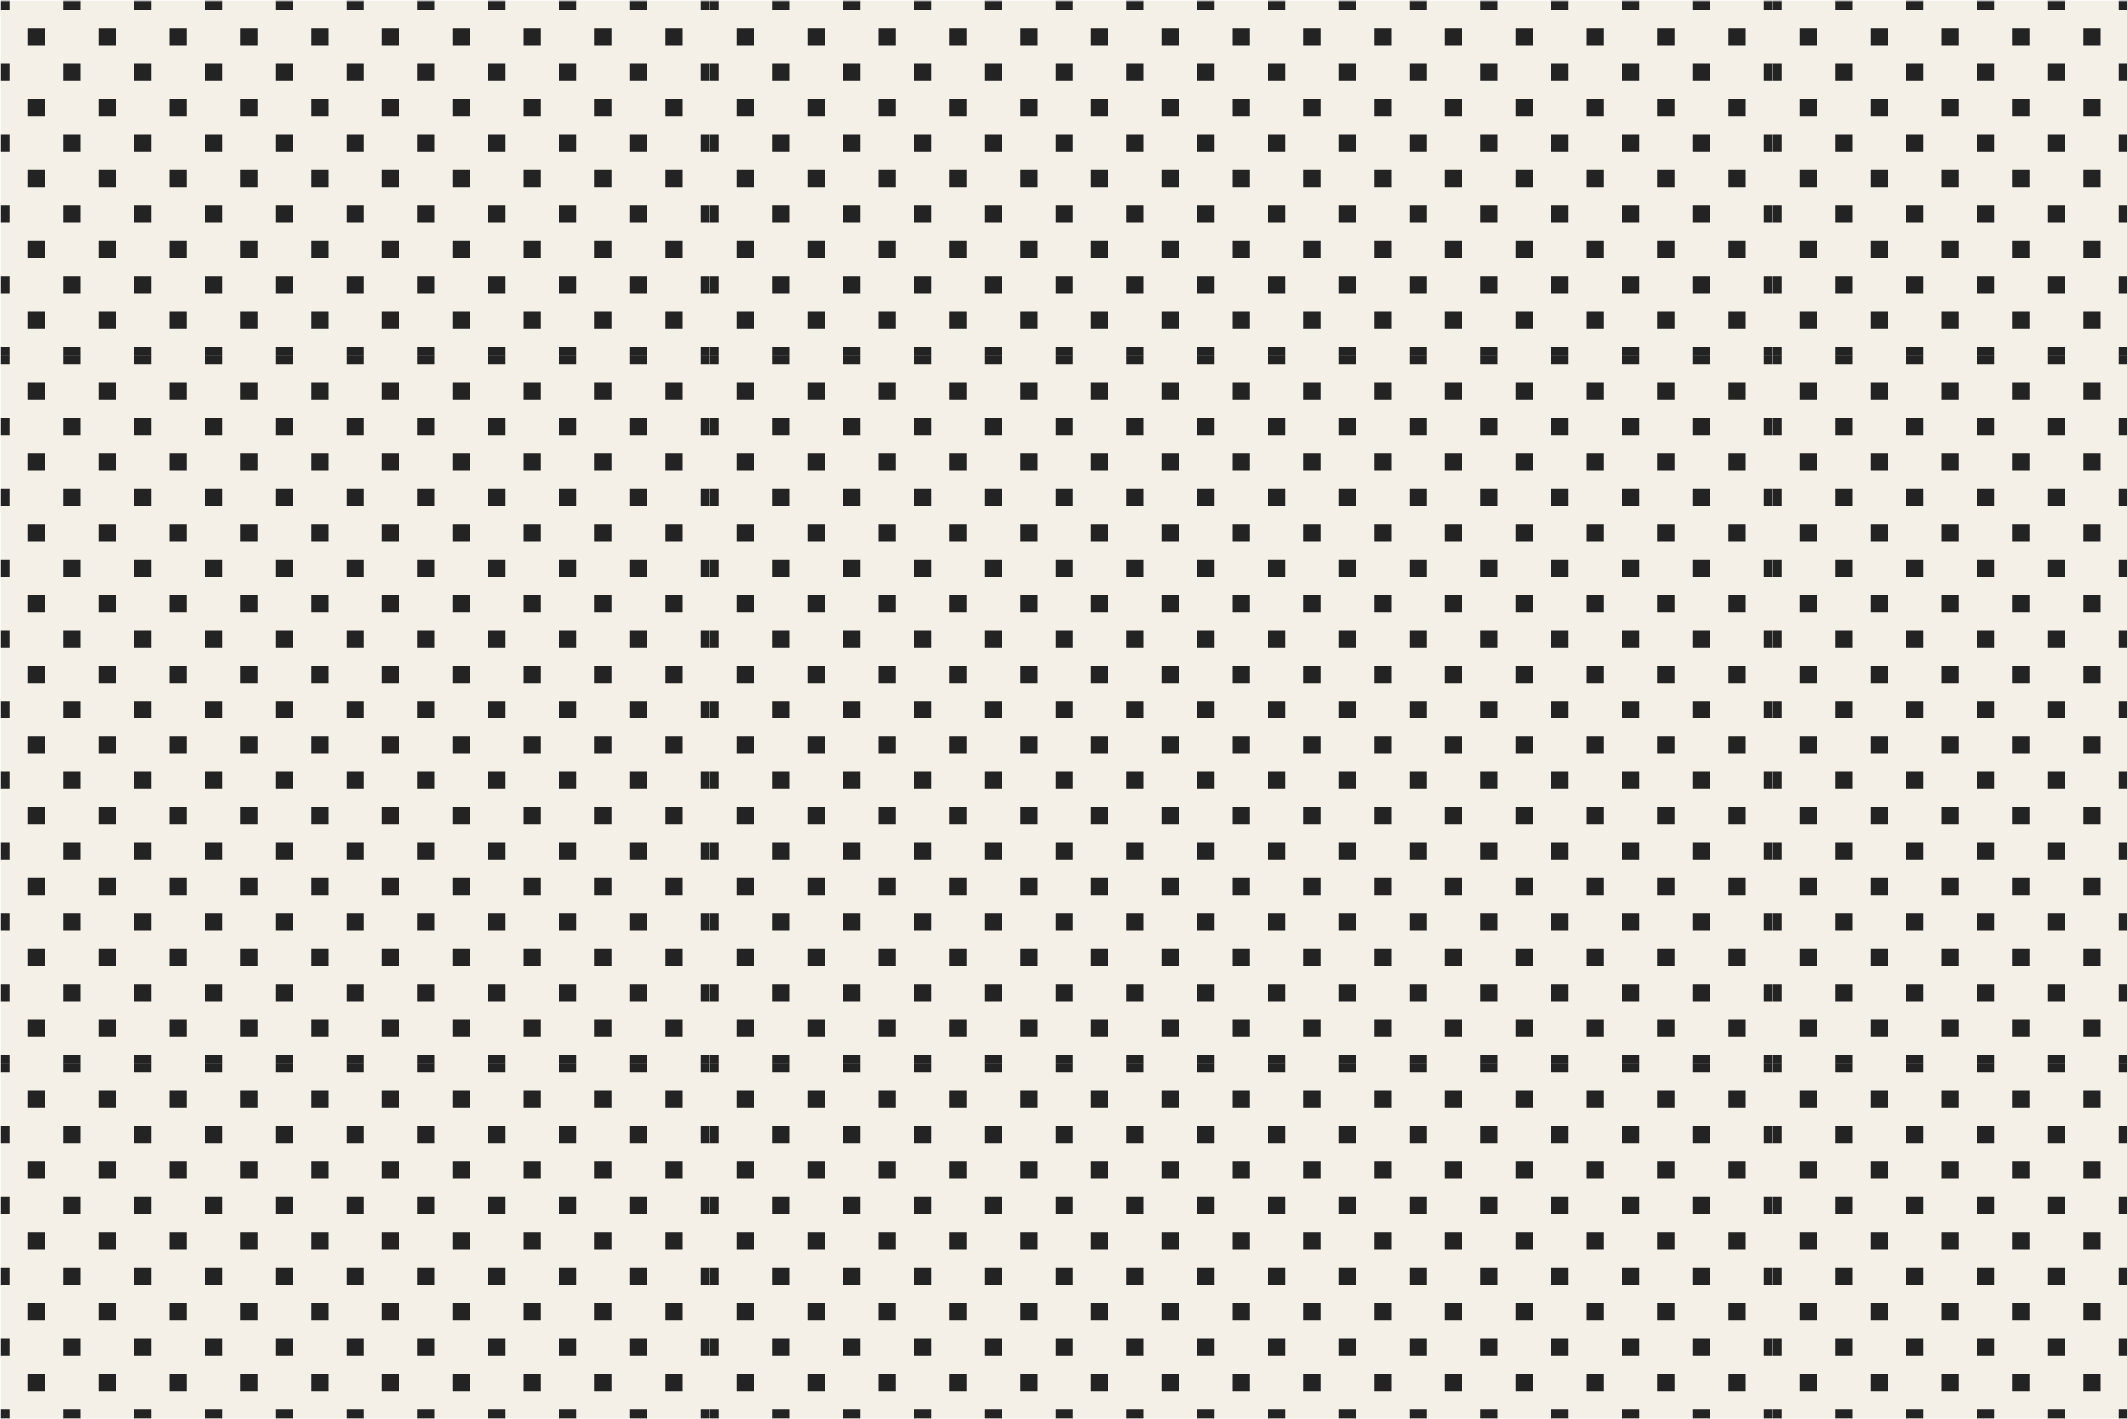 Geometric vector seamless patterns example image 5